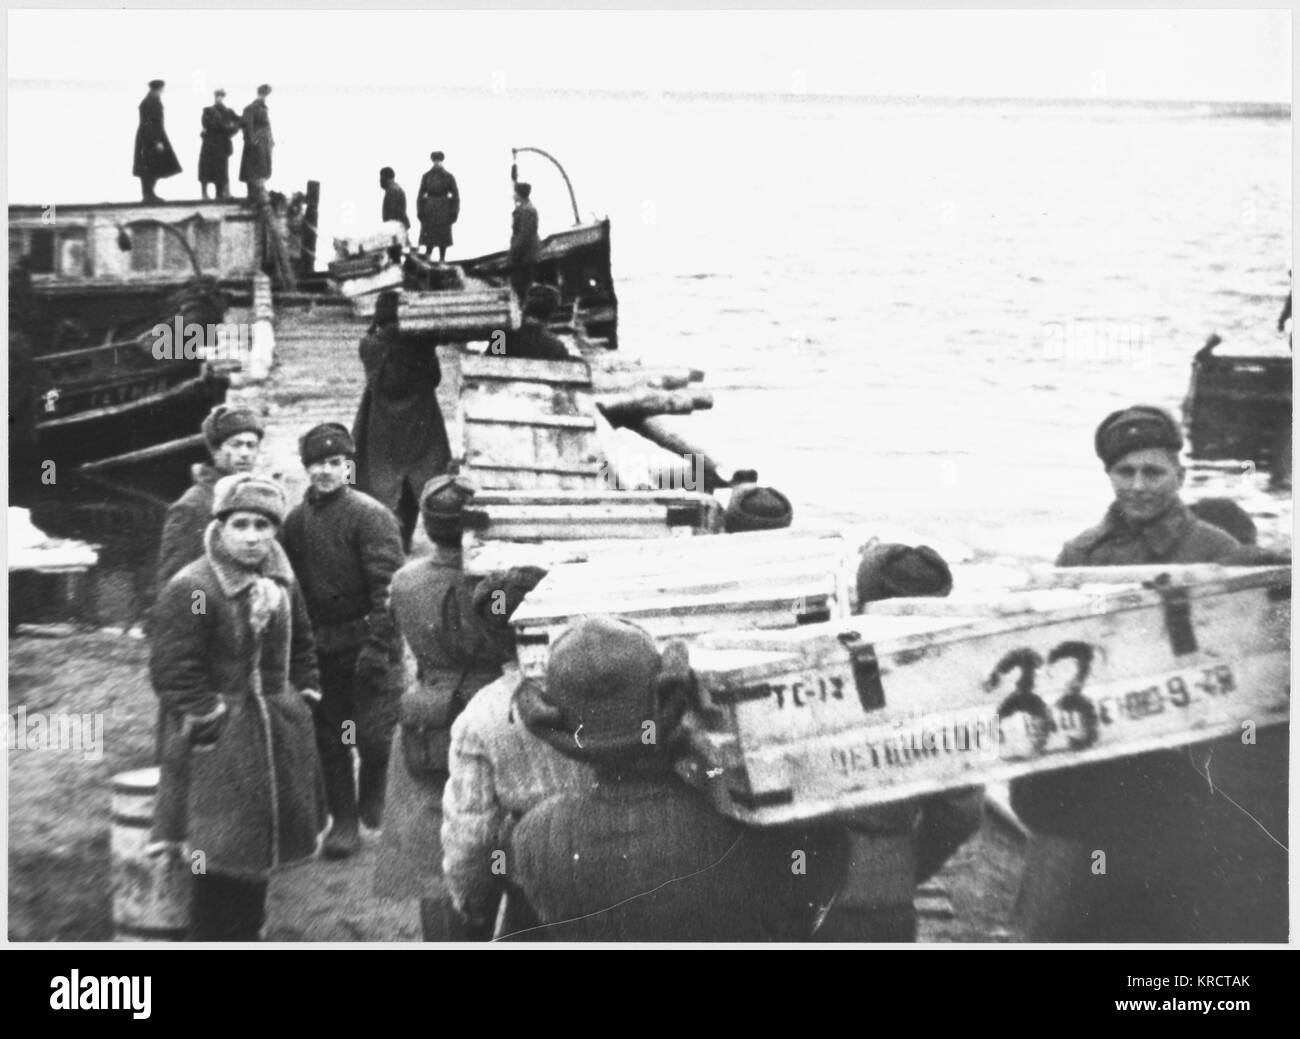 Russia : Supplies being distributed by river to Soviet troops. Date: 1942 - 1944 - Stock Image